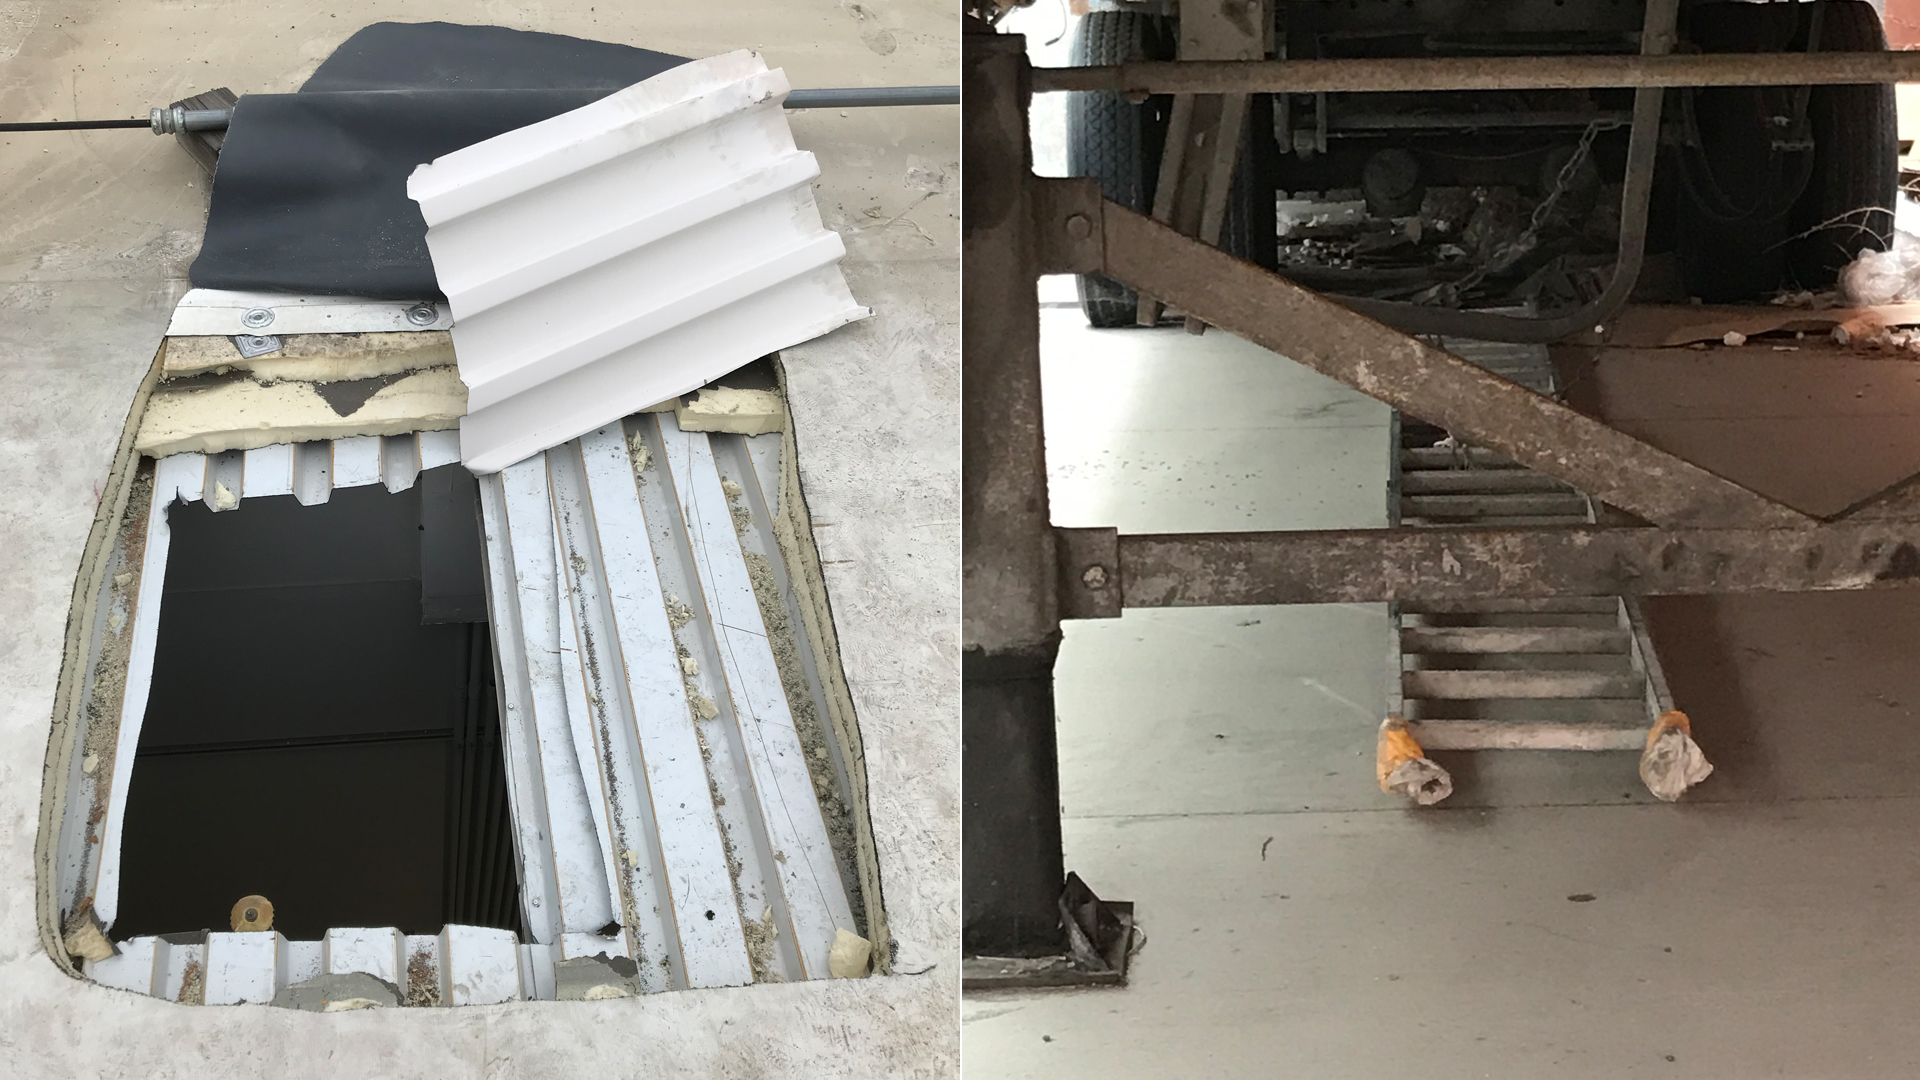 Simi Valley police released these images on July 8, 2019 of a hole in a the roof of a Best Buy and a ladder used in a burglary.